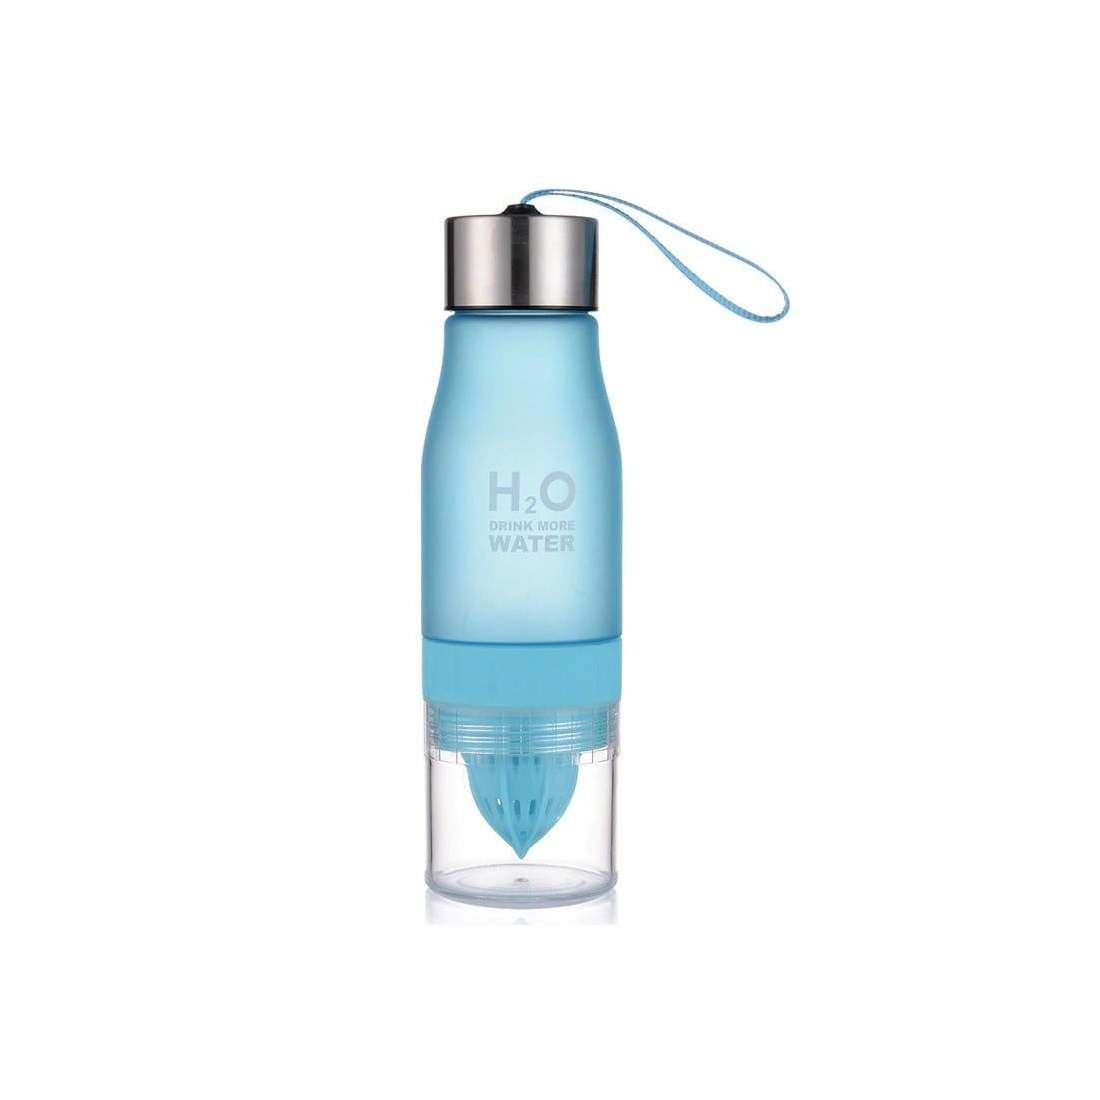 h2o just add water, a fishy tale, the sequel by krystalslazz reviews this is the sequel to 'a fishy tale' H2o Water Bottle With Citrus Press Blue Estore